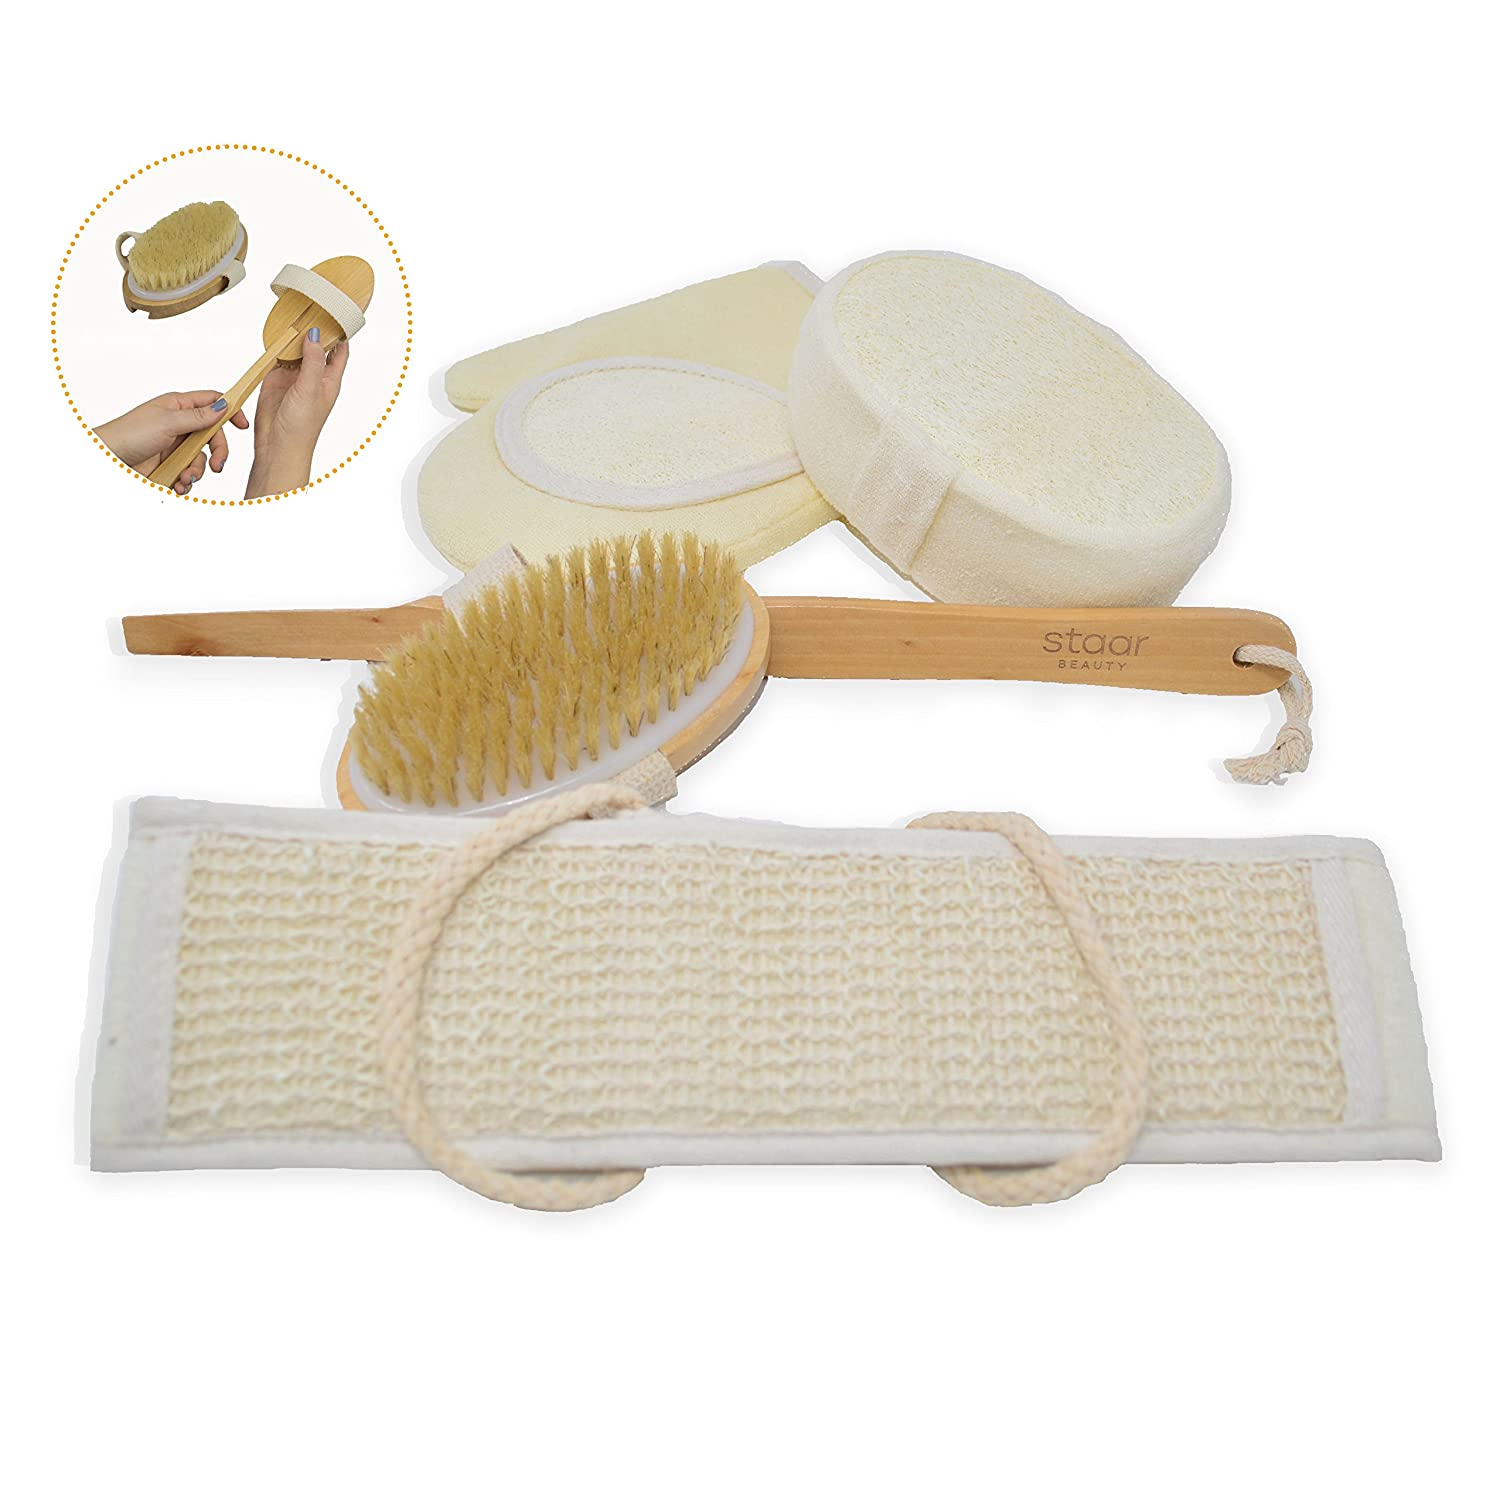 Loofah Bath Set and Dry Brush - Sponge, Loofah Back Scrubber and Glove Plus Dry Brush - This Exfoliating Bath Set Can Improve Skin Health and Cellulite, Remove Dead Skin, Stimulate Blood Circulation Staar Beauty